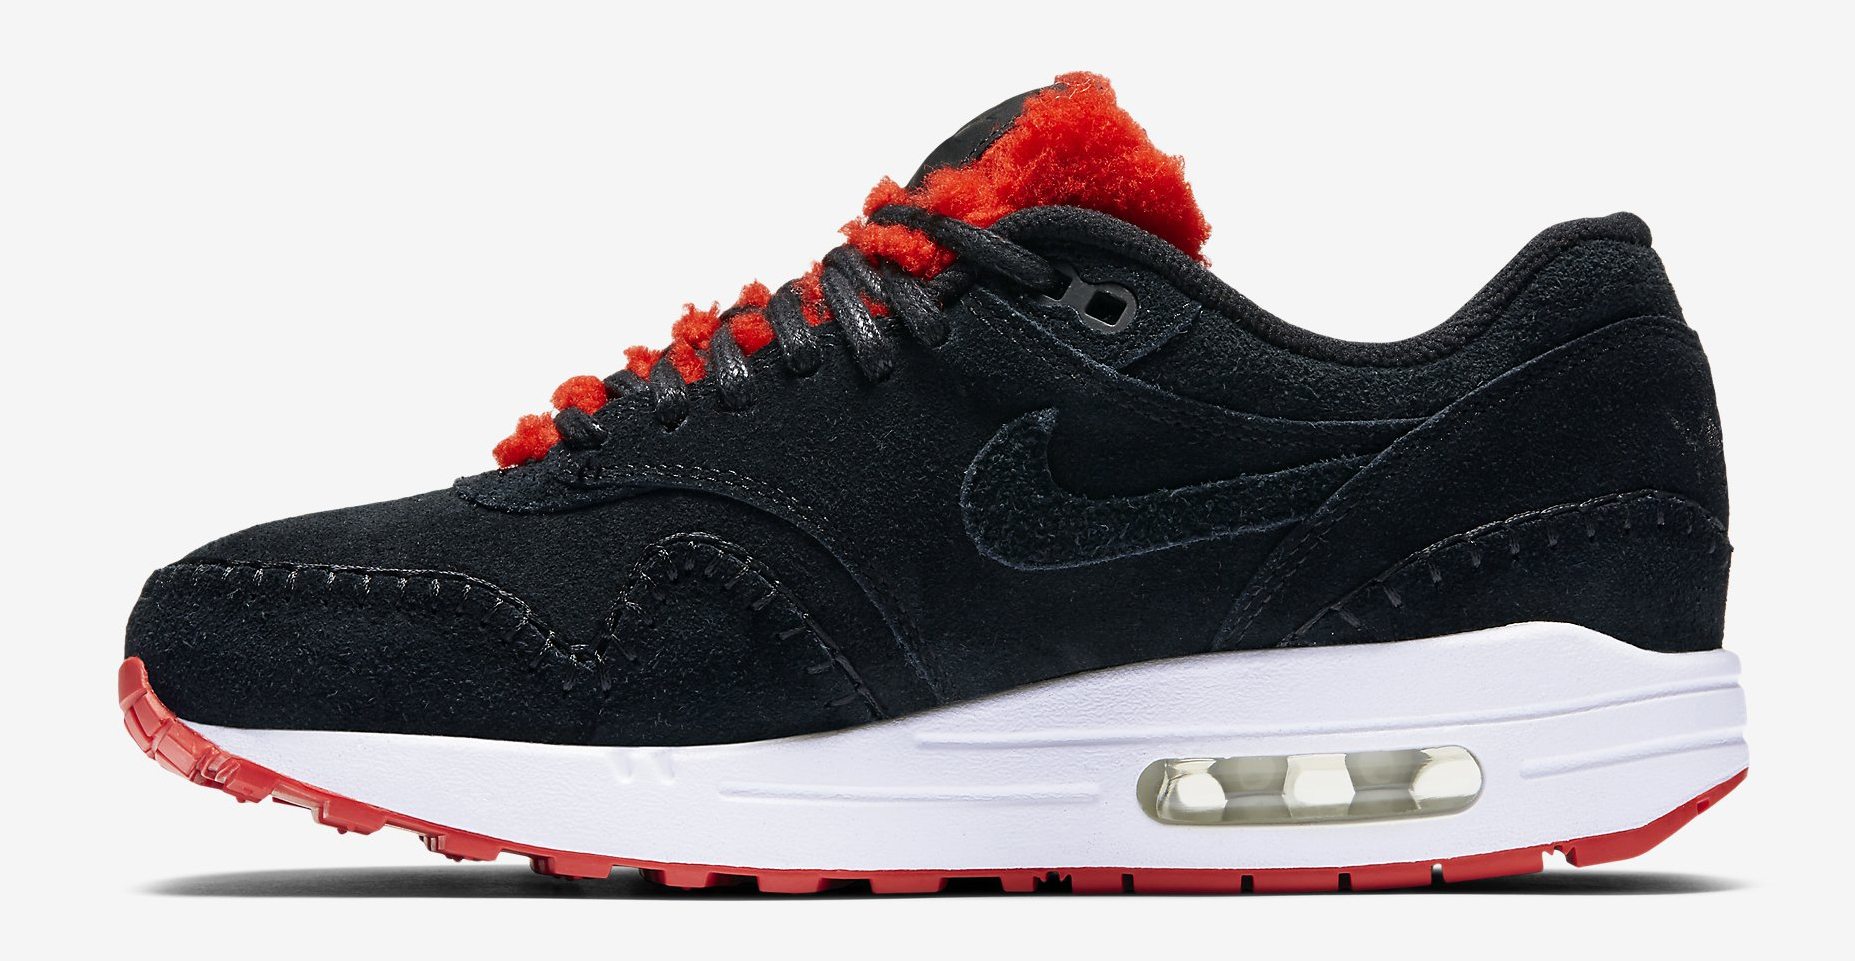 Nike Air Max 1 Sherpa Black Red 454746-010 Medial